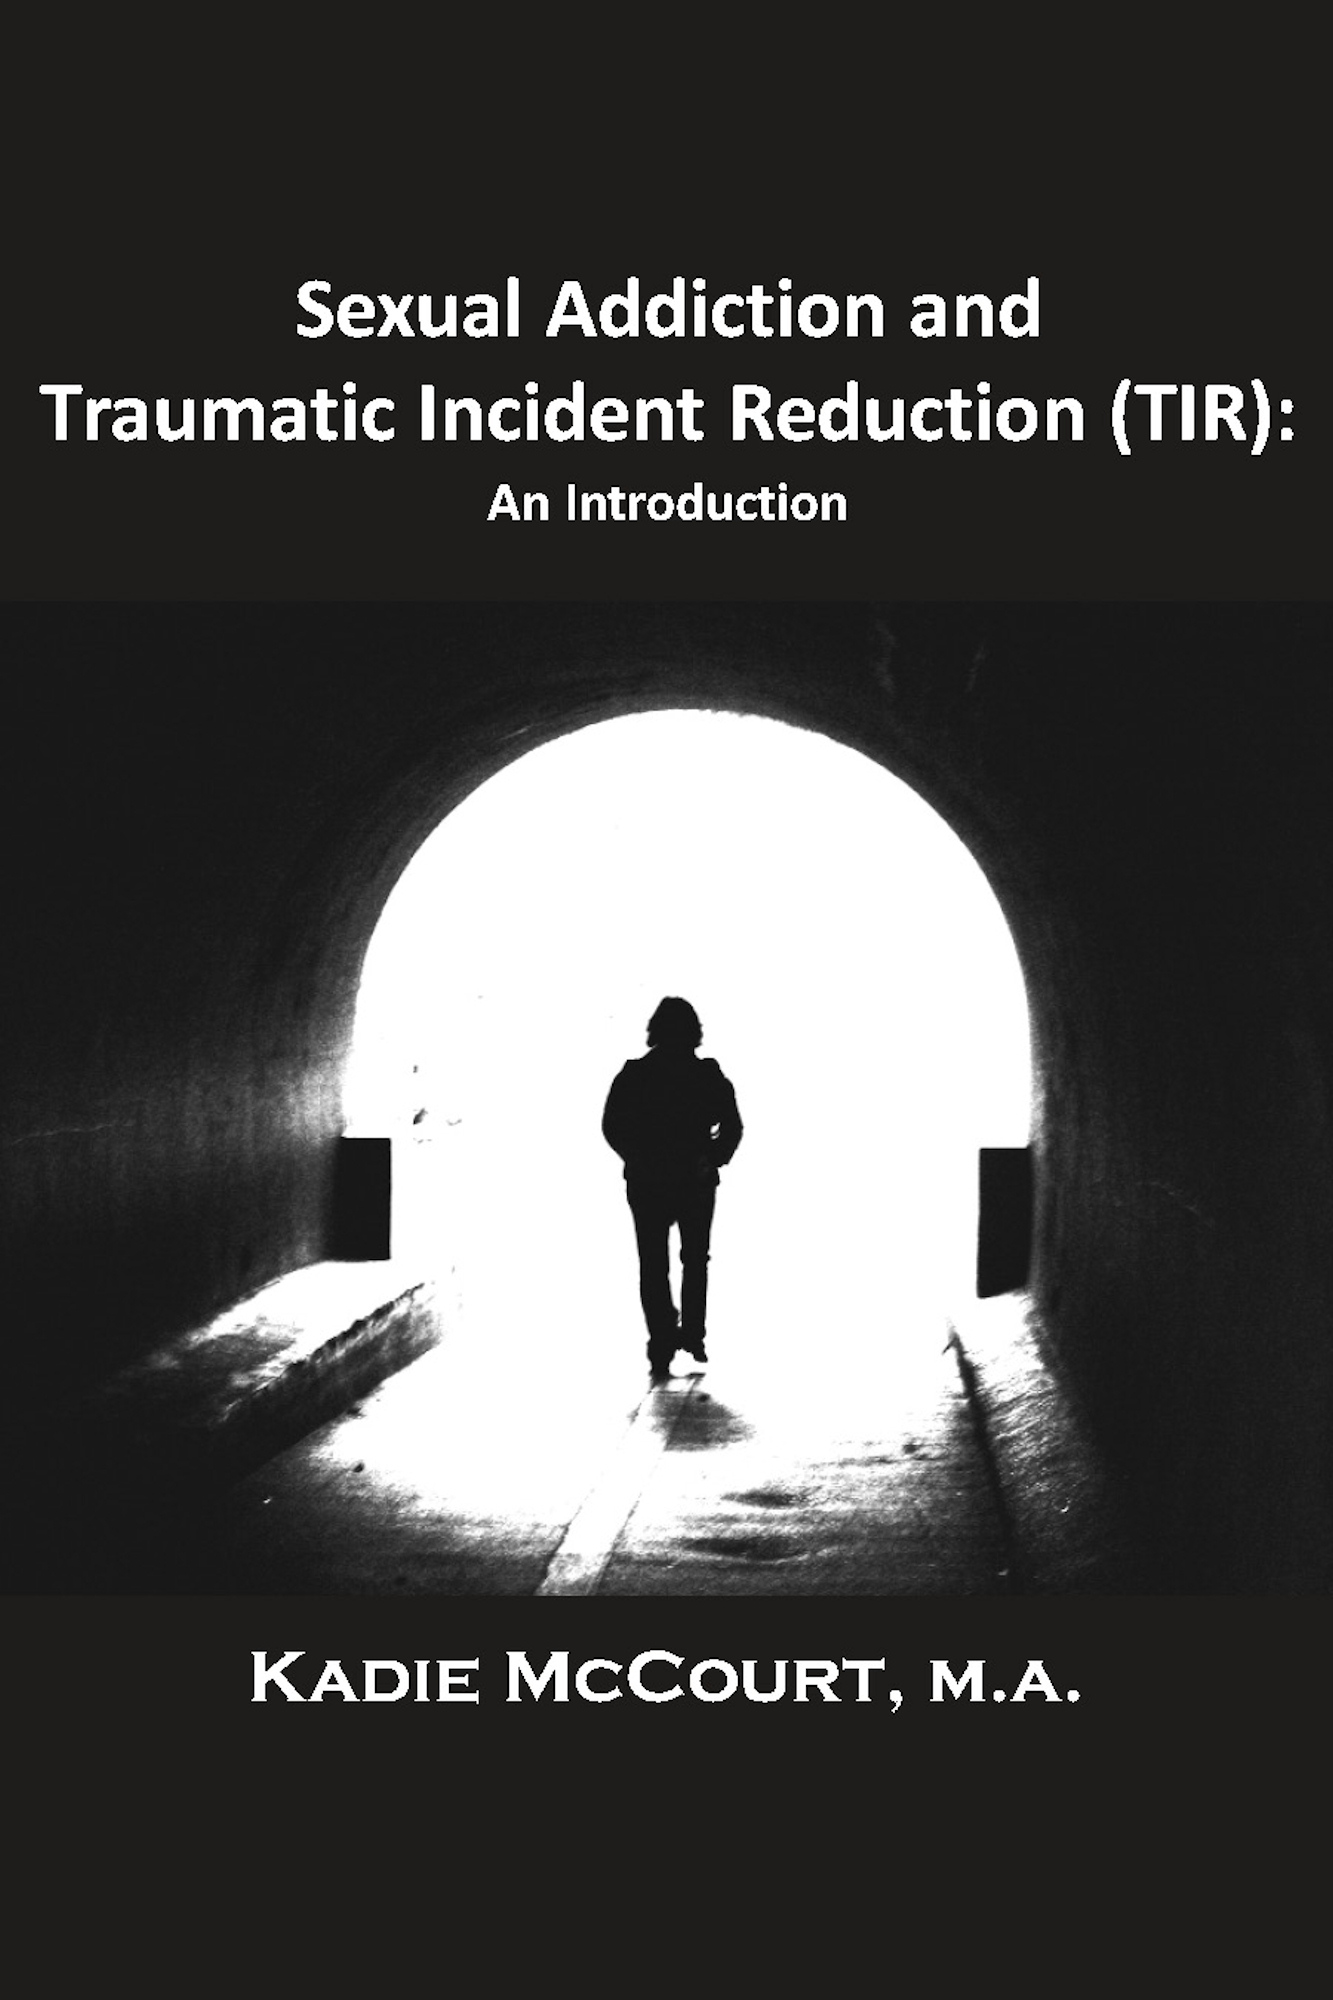 Sexual Addiction and Traumatic Incident Reduction (TIR)